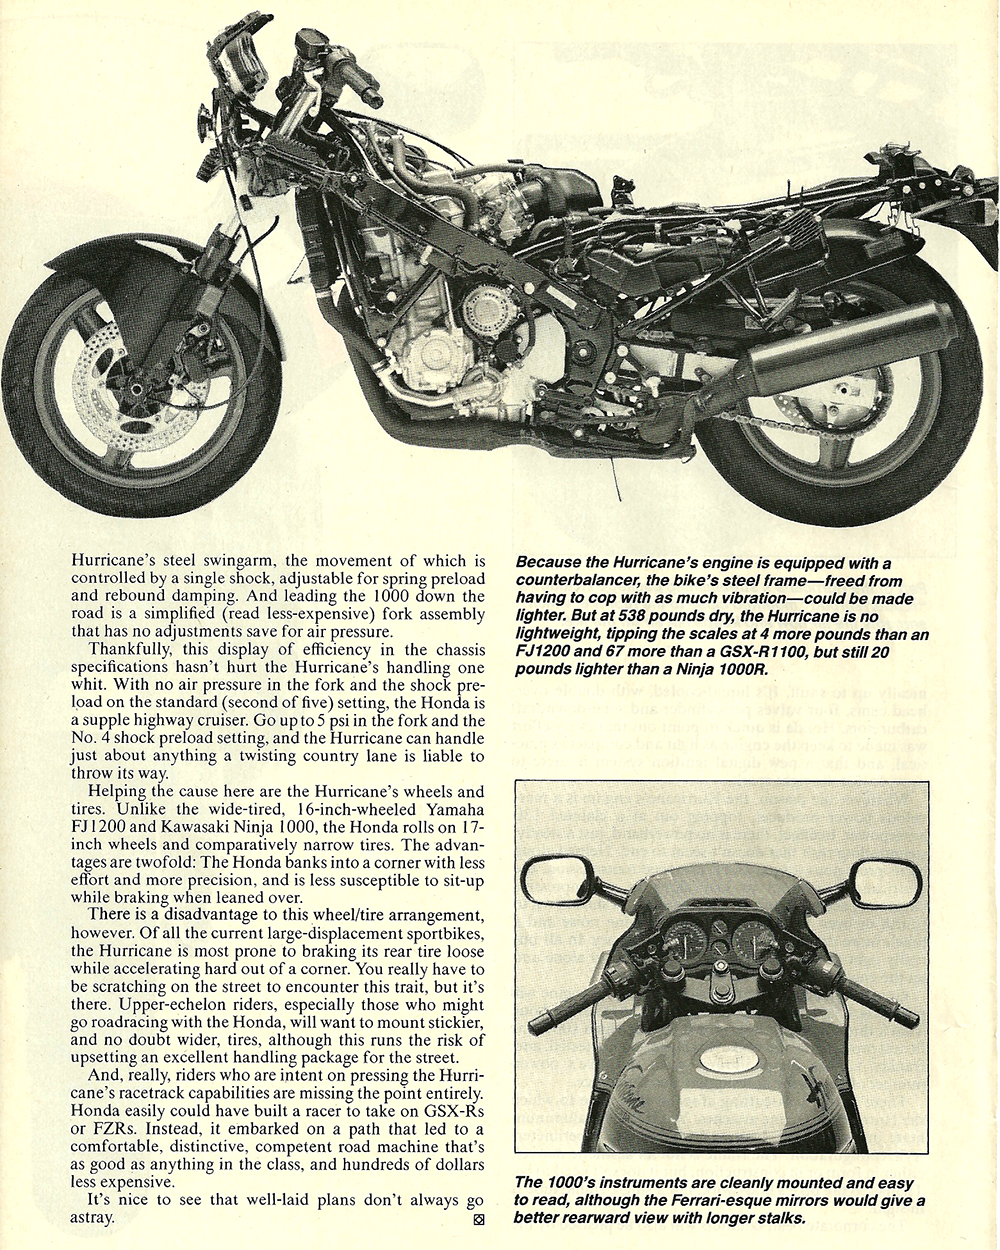 1987 Honda Hurricane 1000 road test 07.jpg